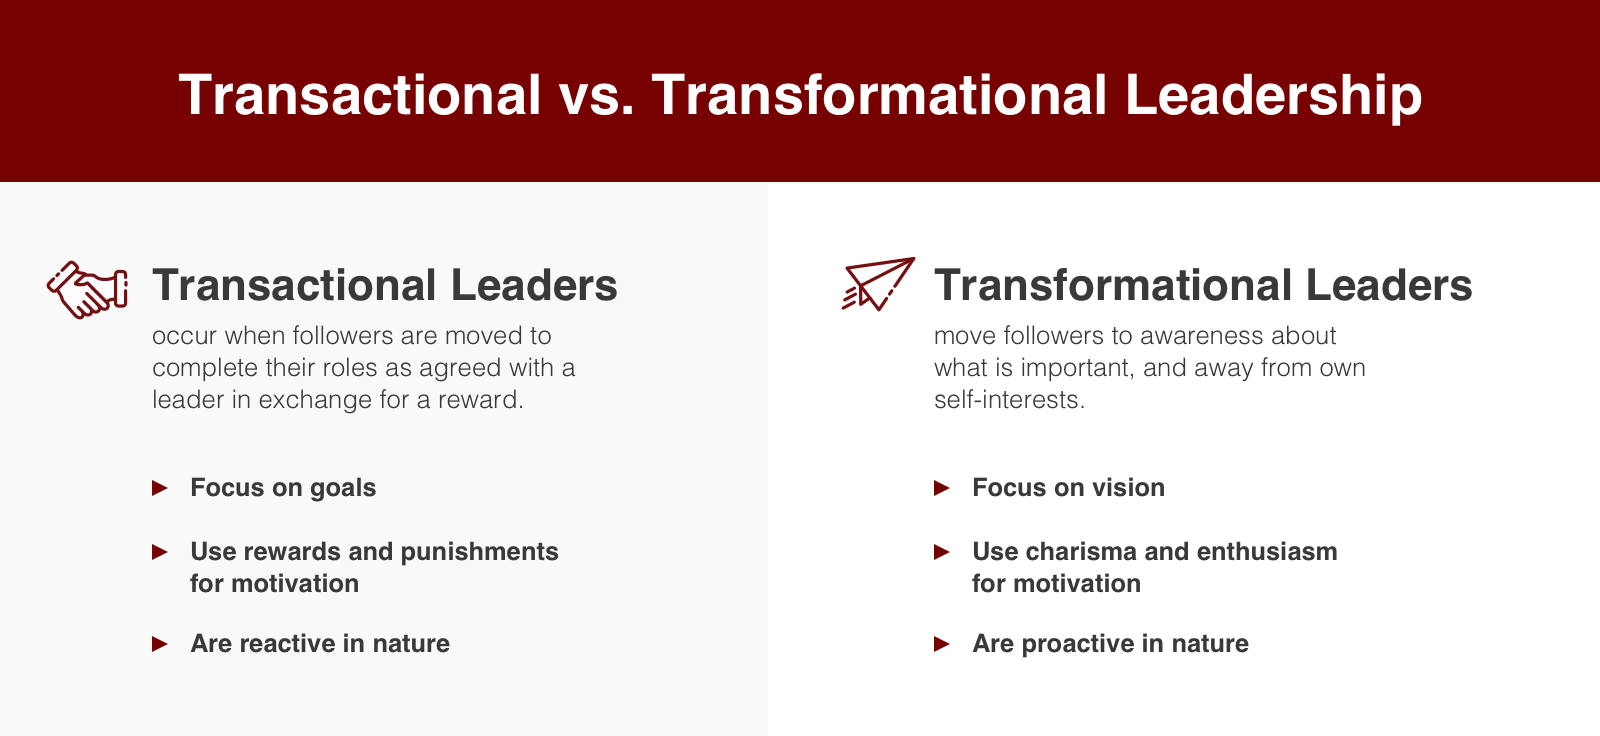 An infographic comparing transactional and transformational leadership.